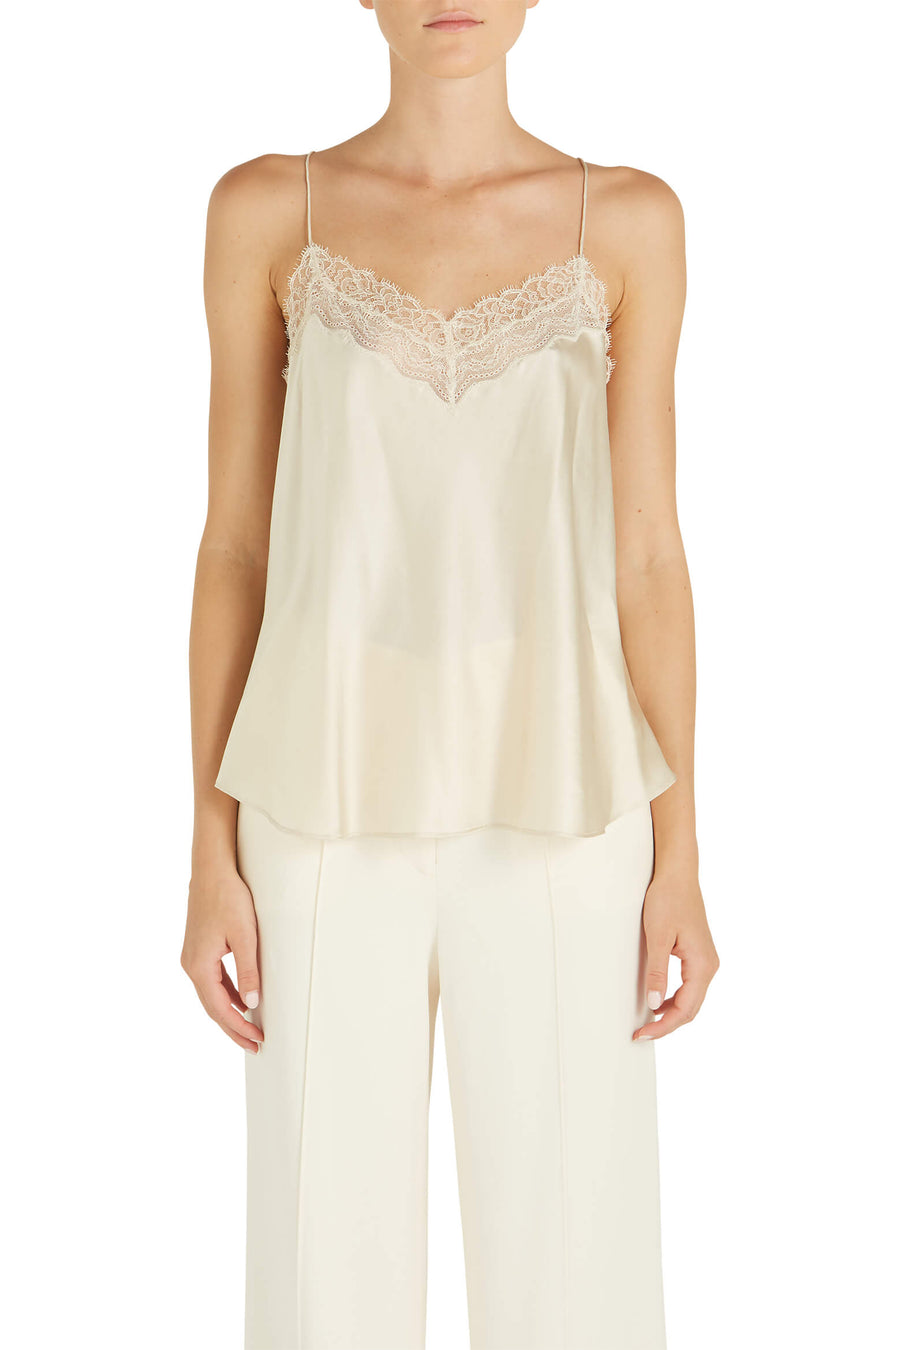 Silk Lace Cami by Jonathan Simkhai at The New Trend